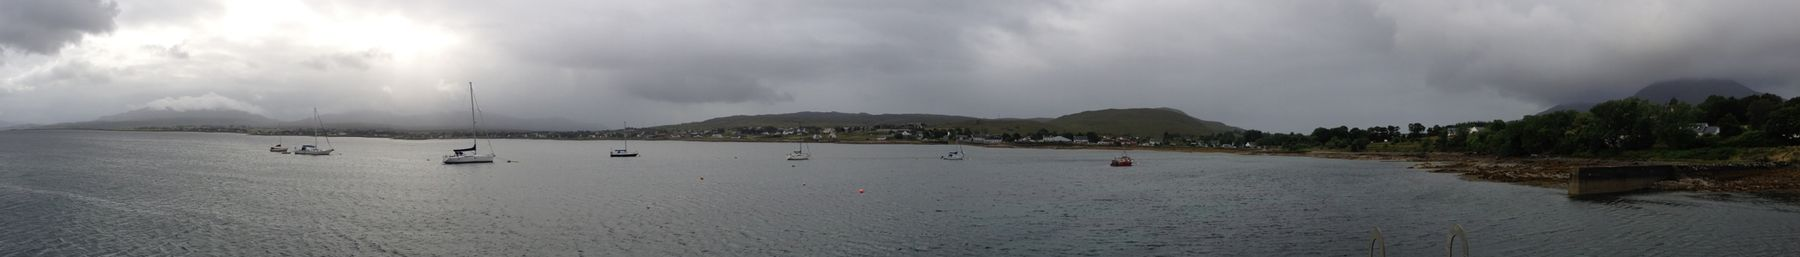 Panorama of Broadford from the Pier